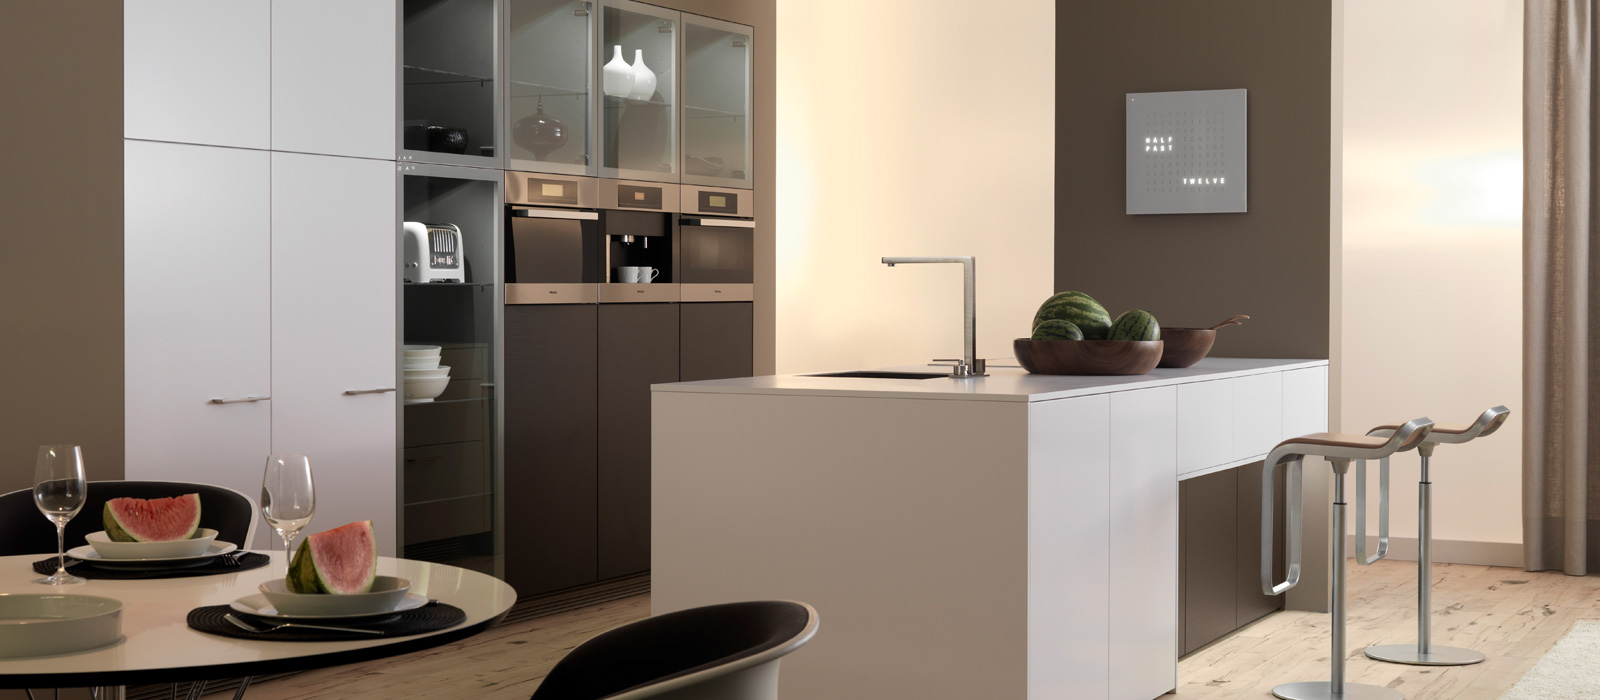 orlando classic fs 2010 perfect proportion kitchen trend alert black concrete topos kitchen cabinets from leicht